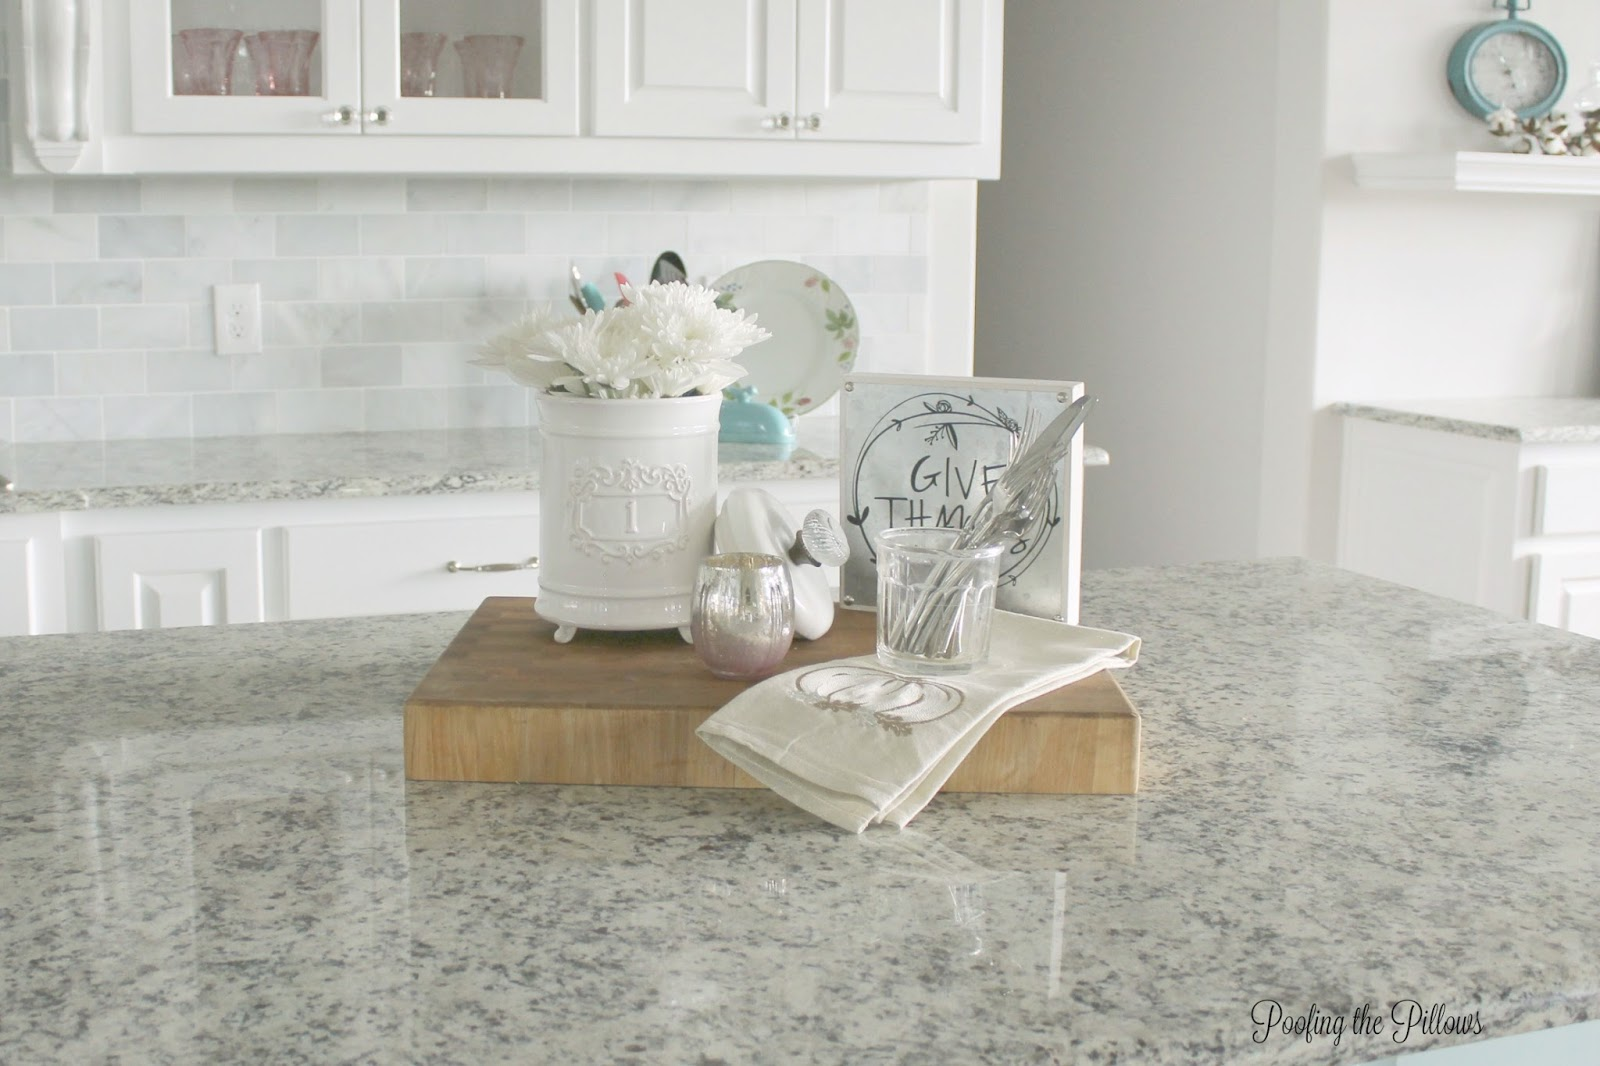 A beautiful kitchen vignette created on an old cutting board, canister, and fresh flowers.